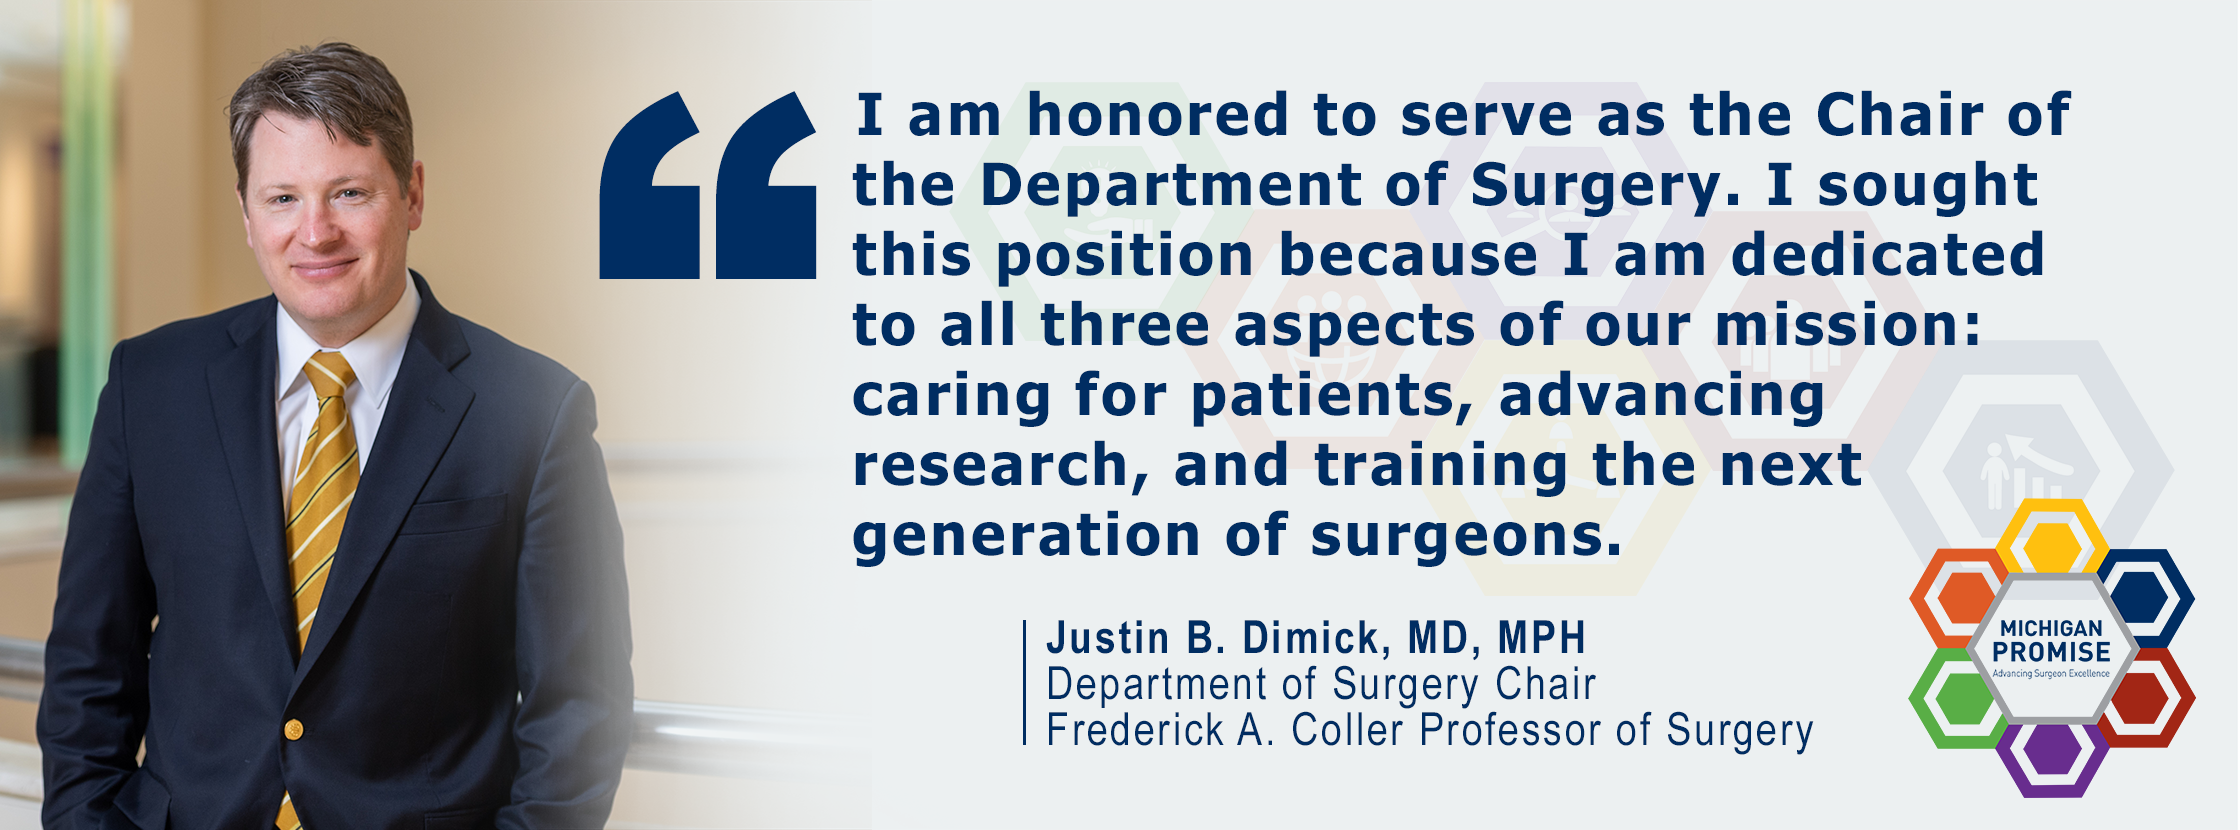 """I am honored to serve as the Chair of the Department of Surgery. I sought this position because I am dedicated to all three aspects of our mission: caring for patients, advancing research, and training the next generation of surgeons."" Justin Dimick, MD"